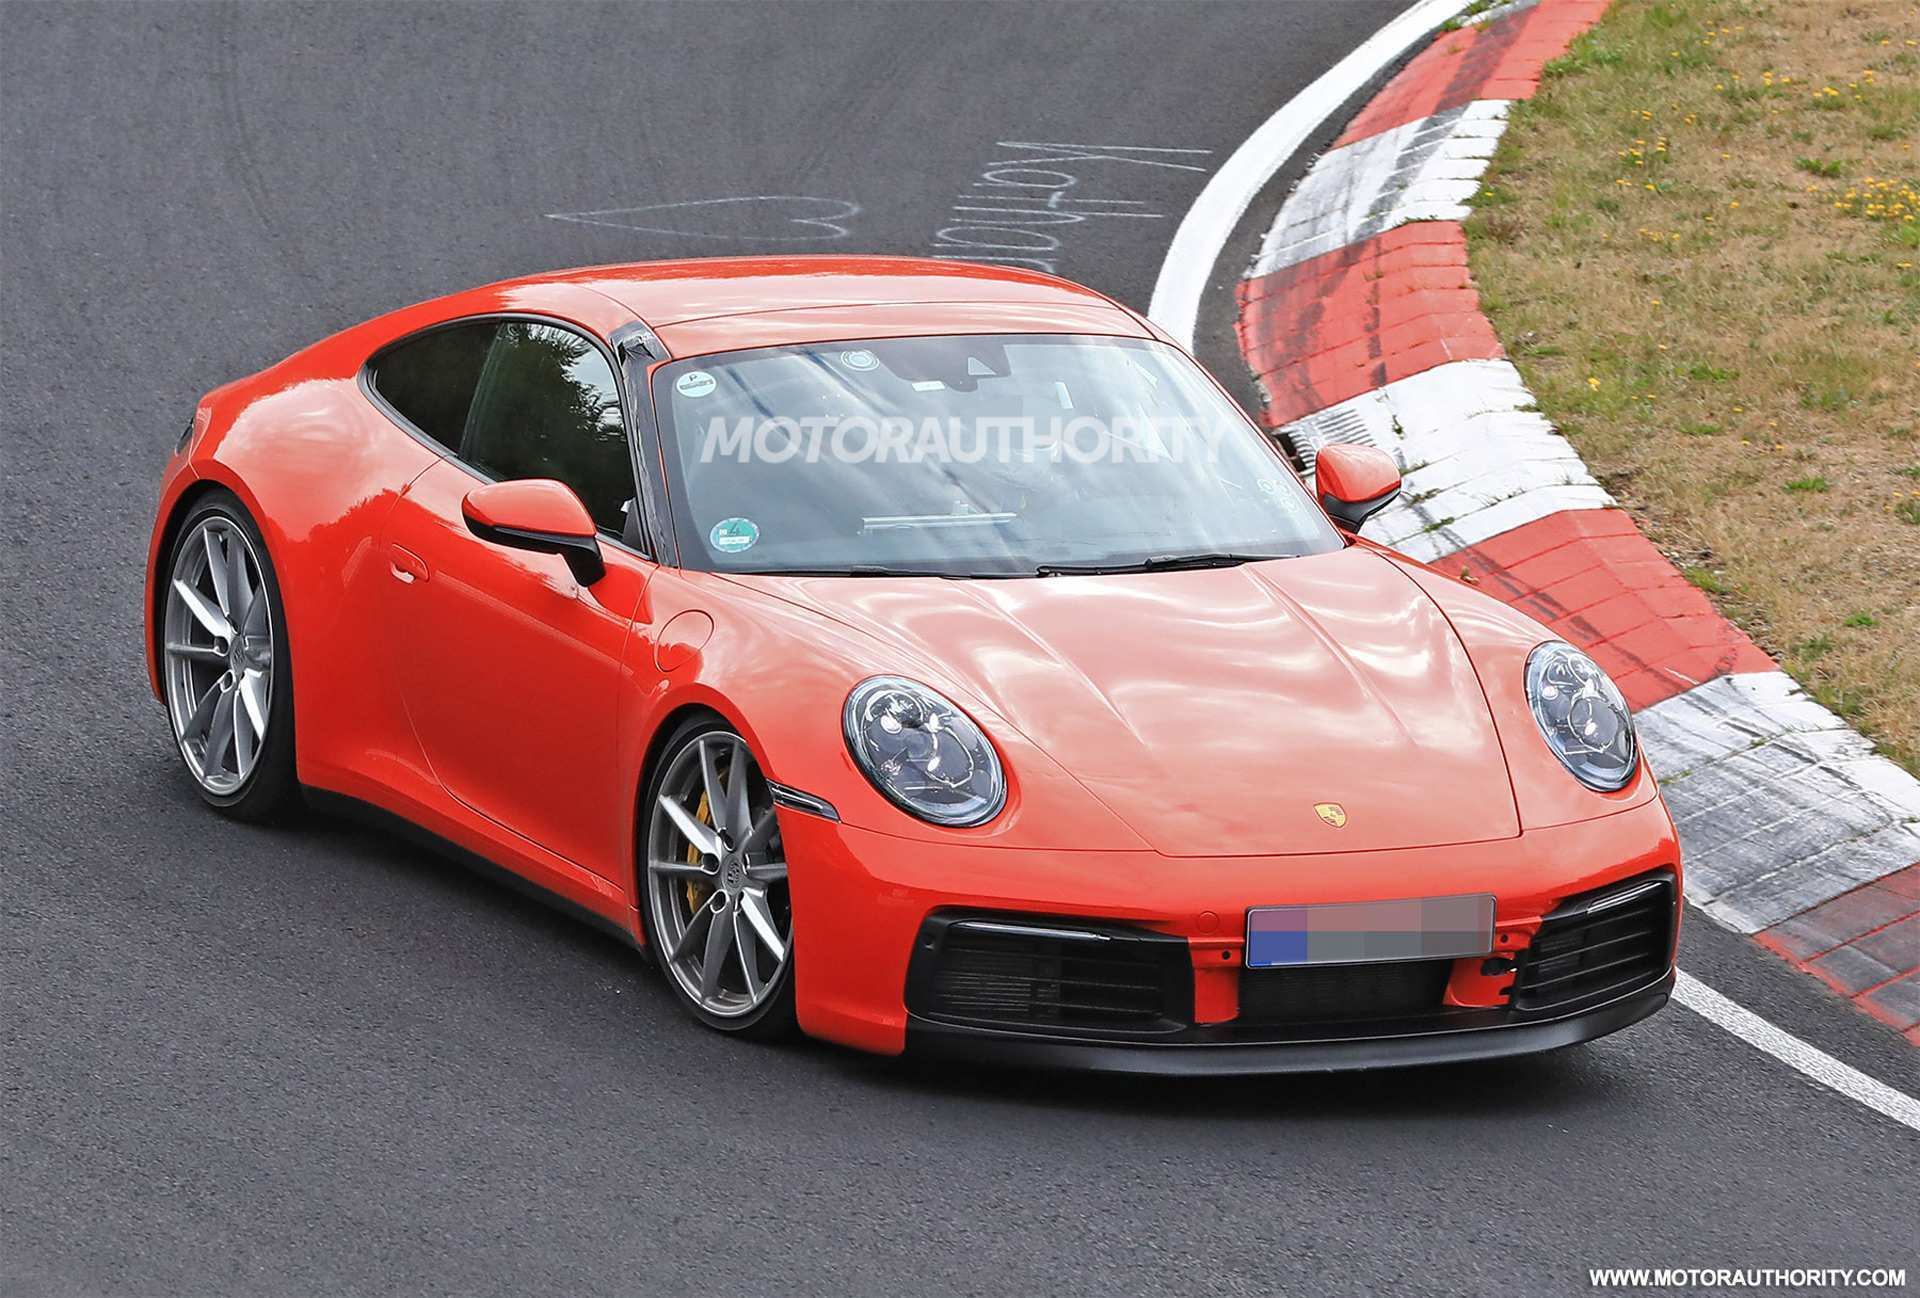 46 All New 2019 Porsche 960 Review And Release Date